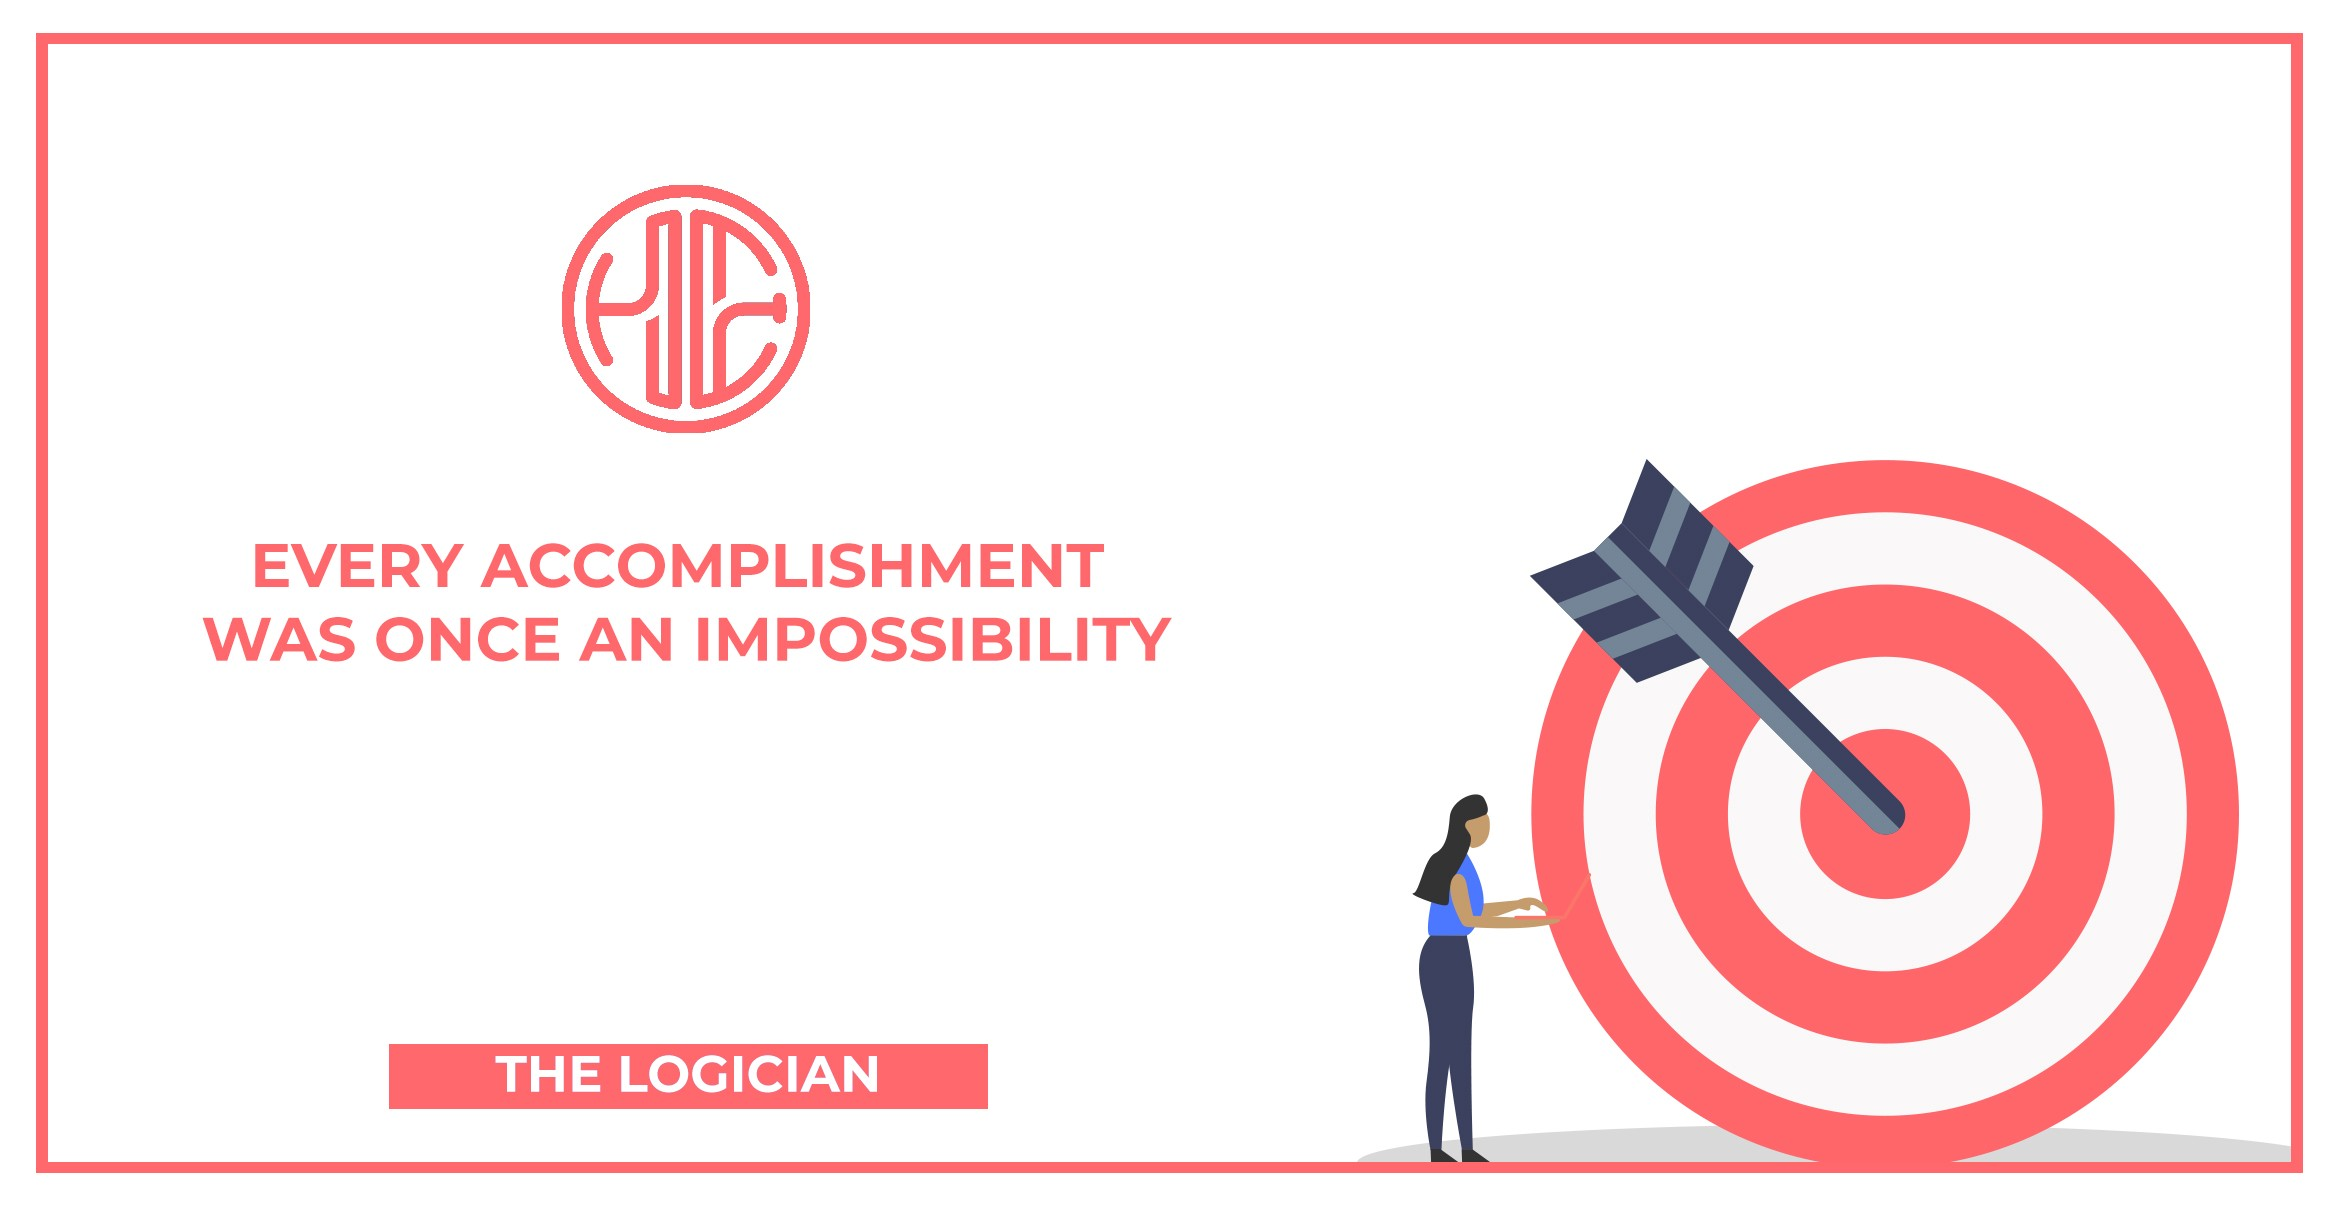 Acomplishment every accomplishment was once an impossibility - the